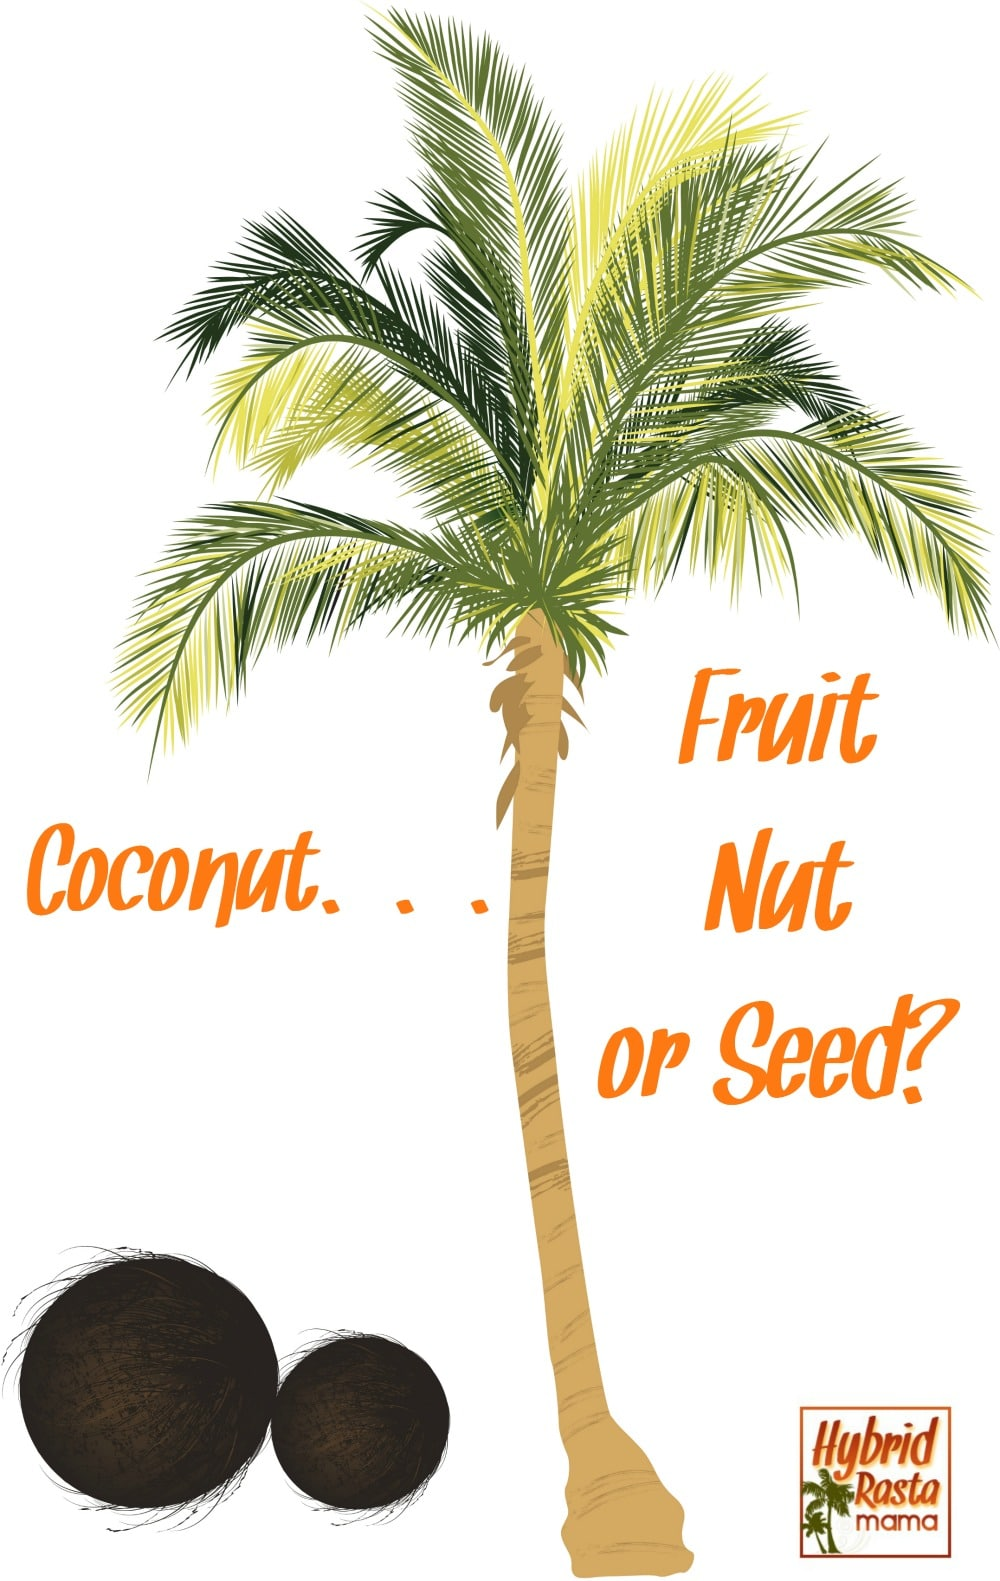 It's a fruit! It's a nut! It's a seed! It's a Coconut? Well, what is it? Let's explore some coconut botany and get to the bottom of this mystery with HybridRastaMama.com.